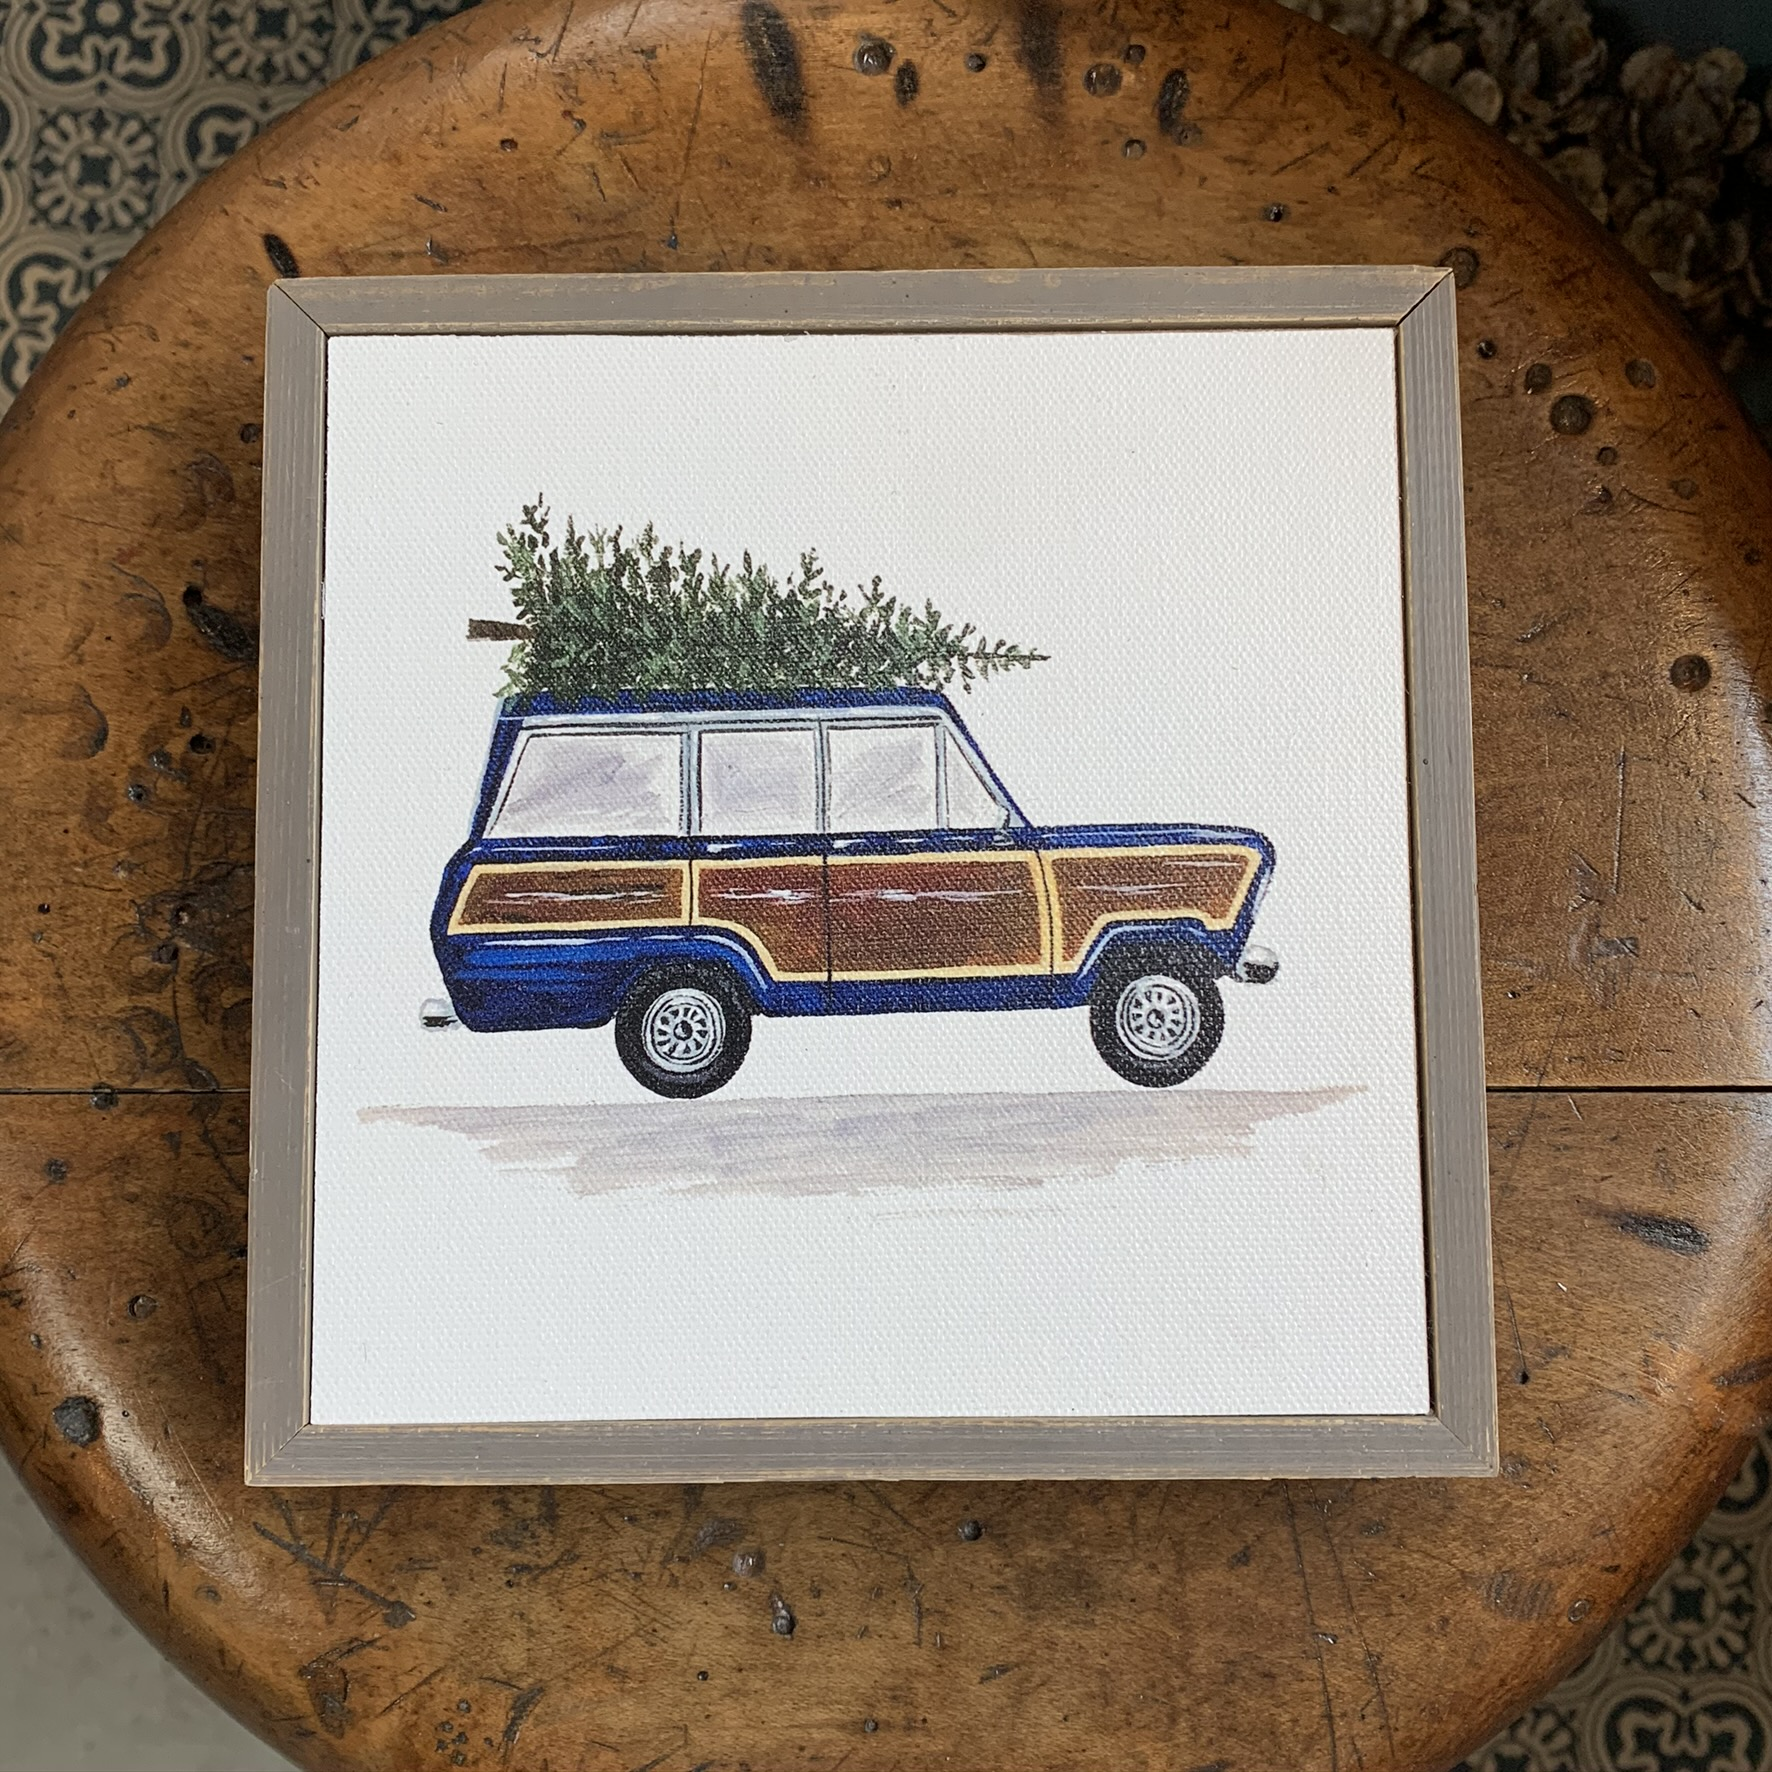 A framed picture of a station wagon carrying a Christmas tree on its roof.